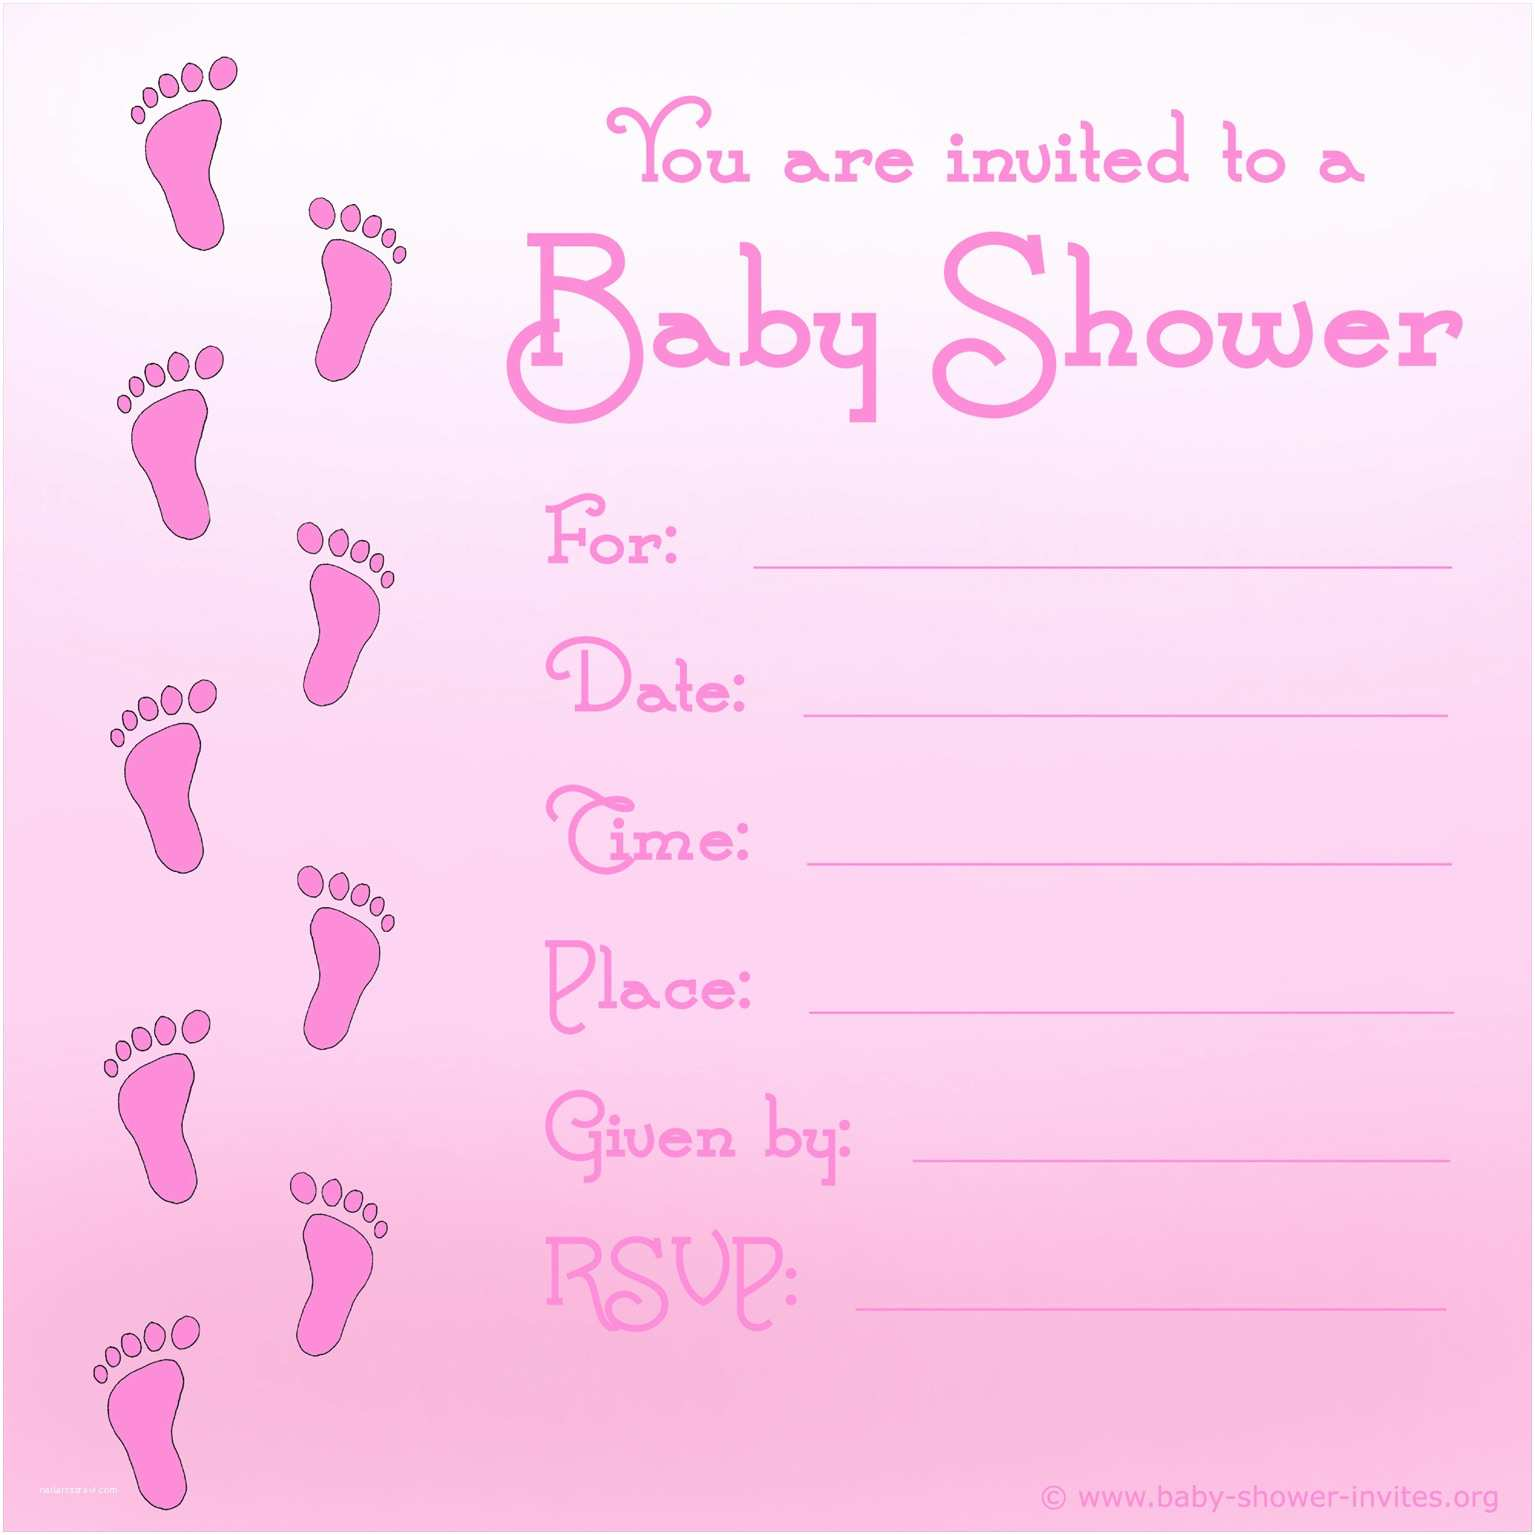 Baby Girl Shower Invitations Baby Shower Invitation Wording Lifestyle9